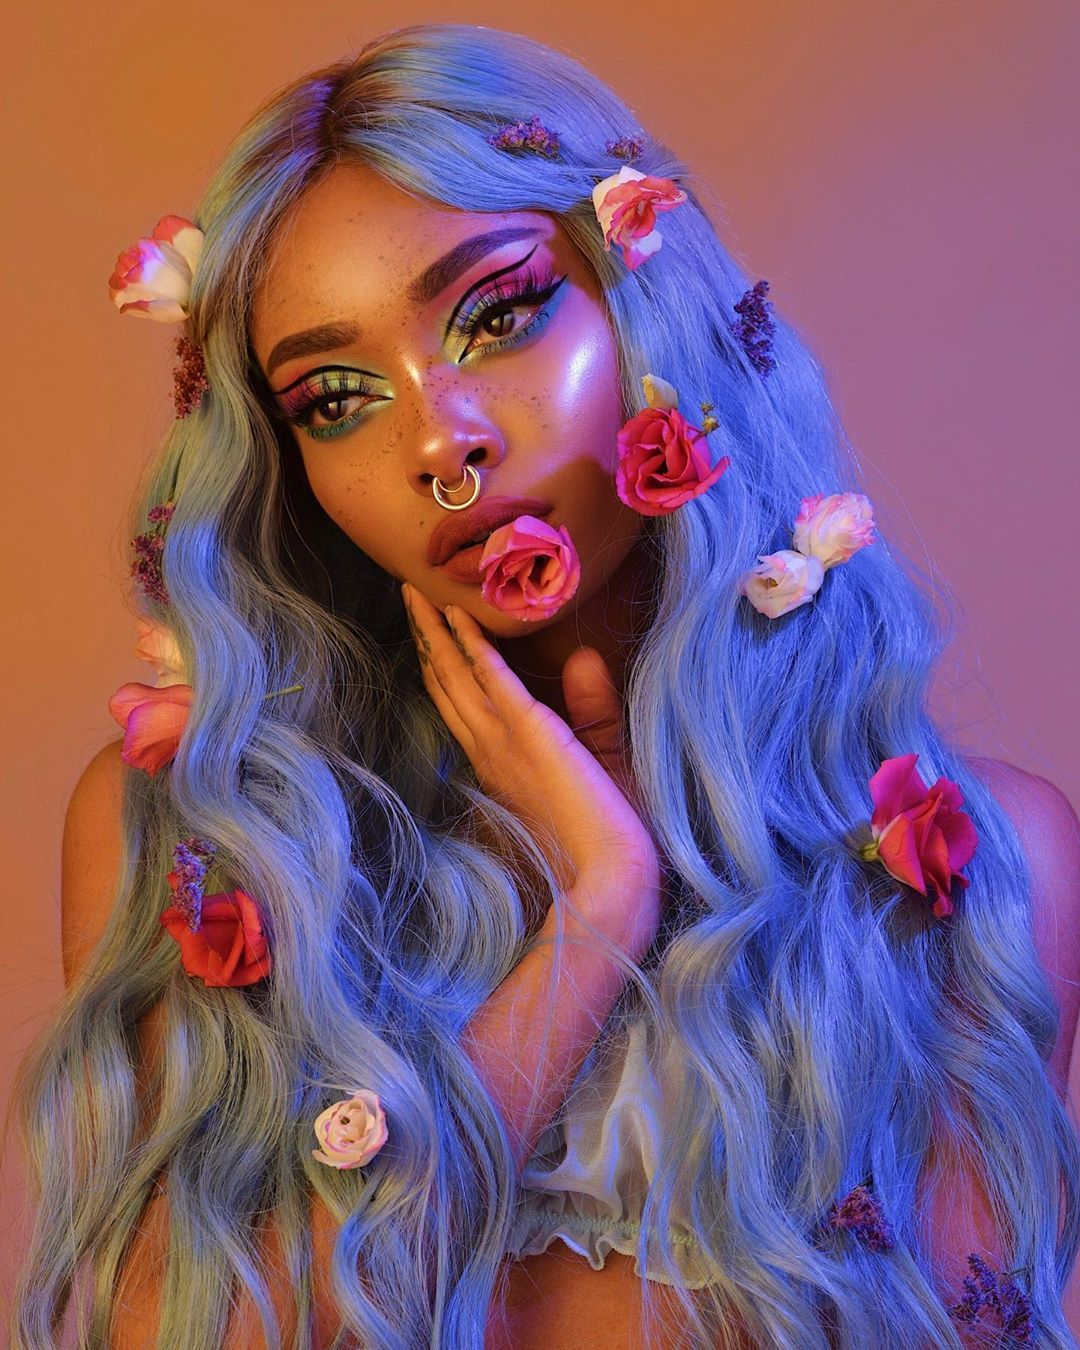 Blue Wigs Lace Frontal Wigs Cheap Human Wigs Teal Blue Hair Colour Childrens Blue Wig Faded Dark Blue Hair